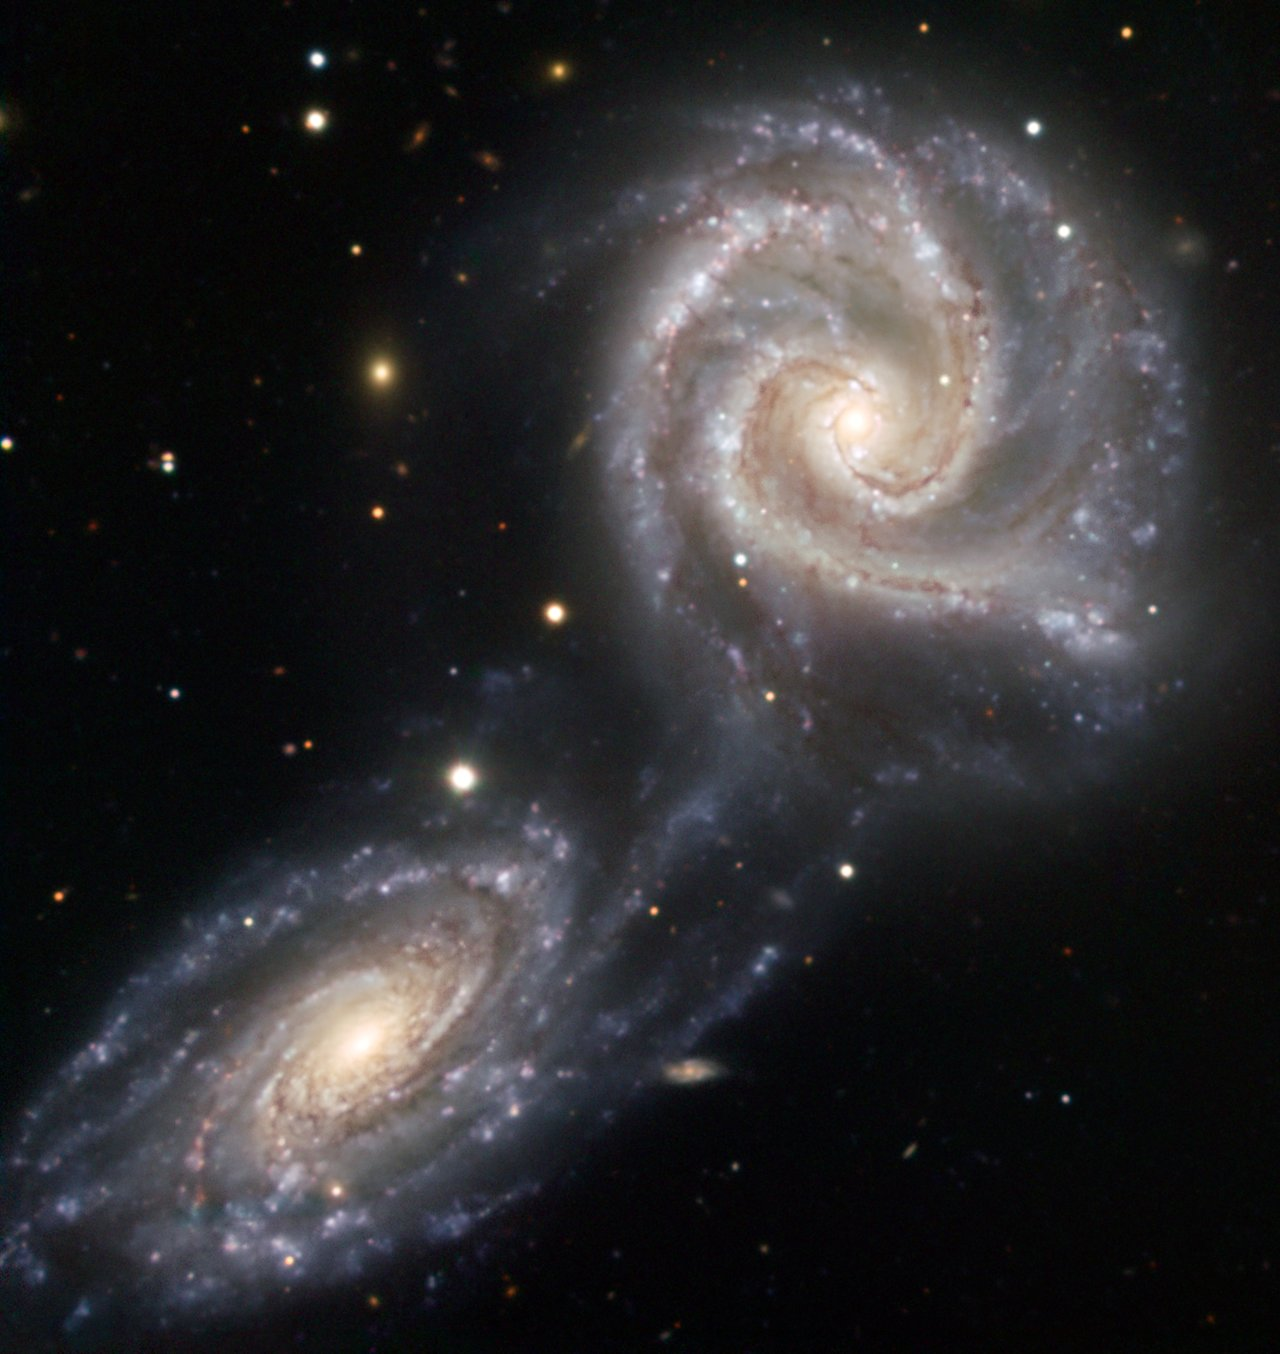 Mounted image 111: Arp 271 — Galaxies Drawn Together